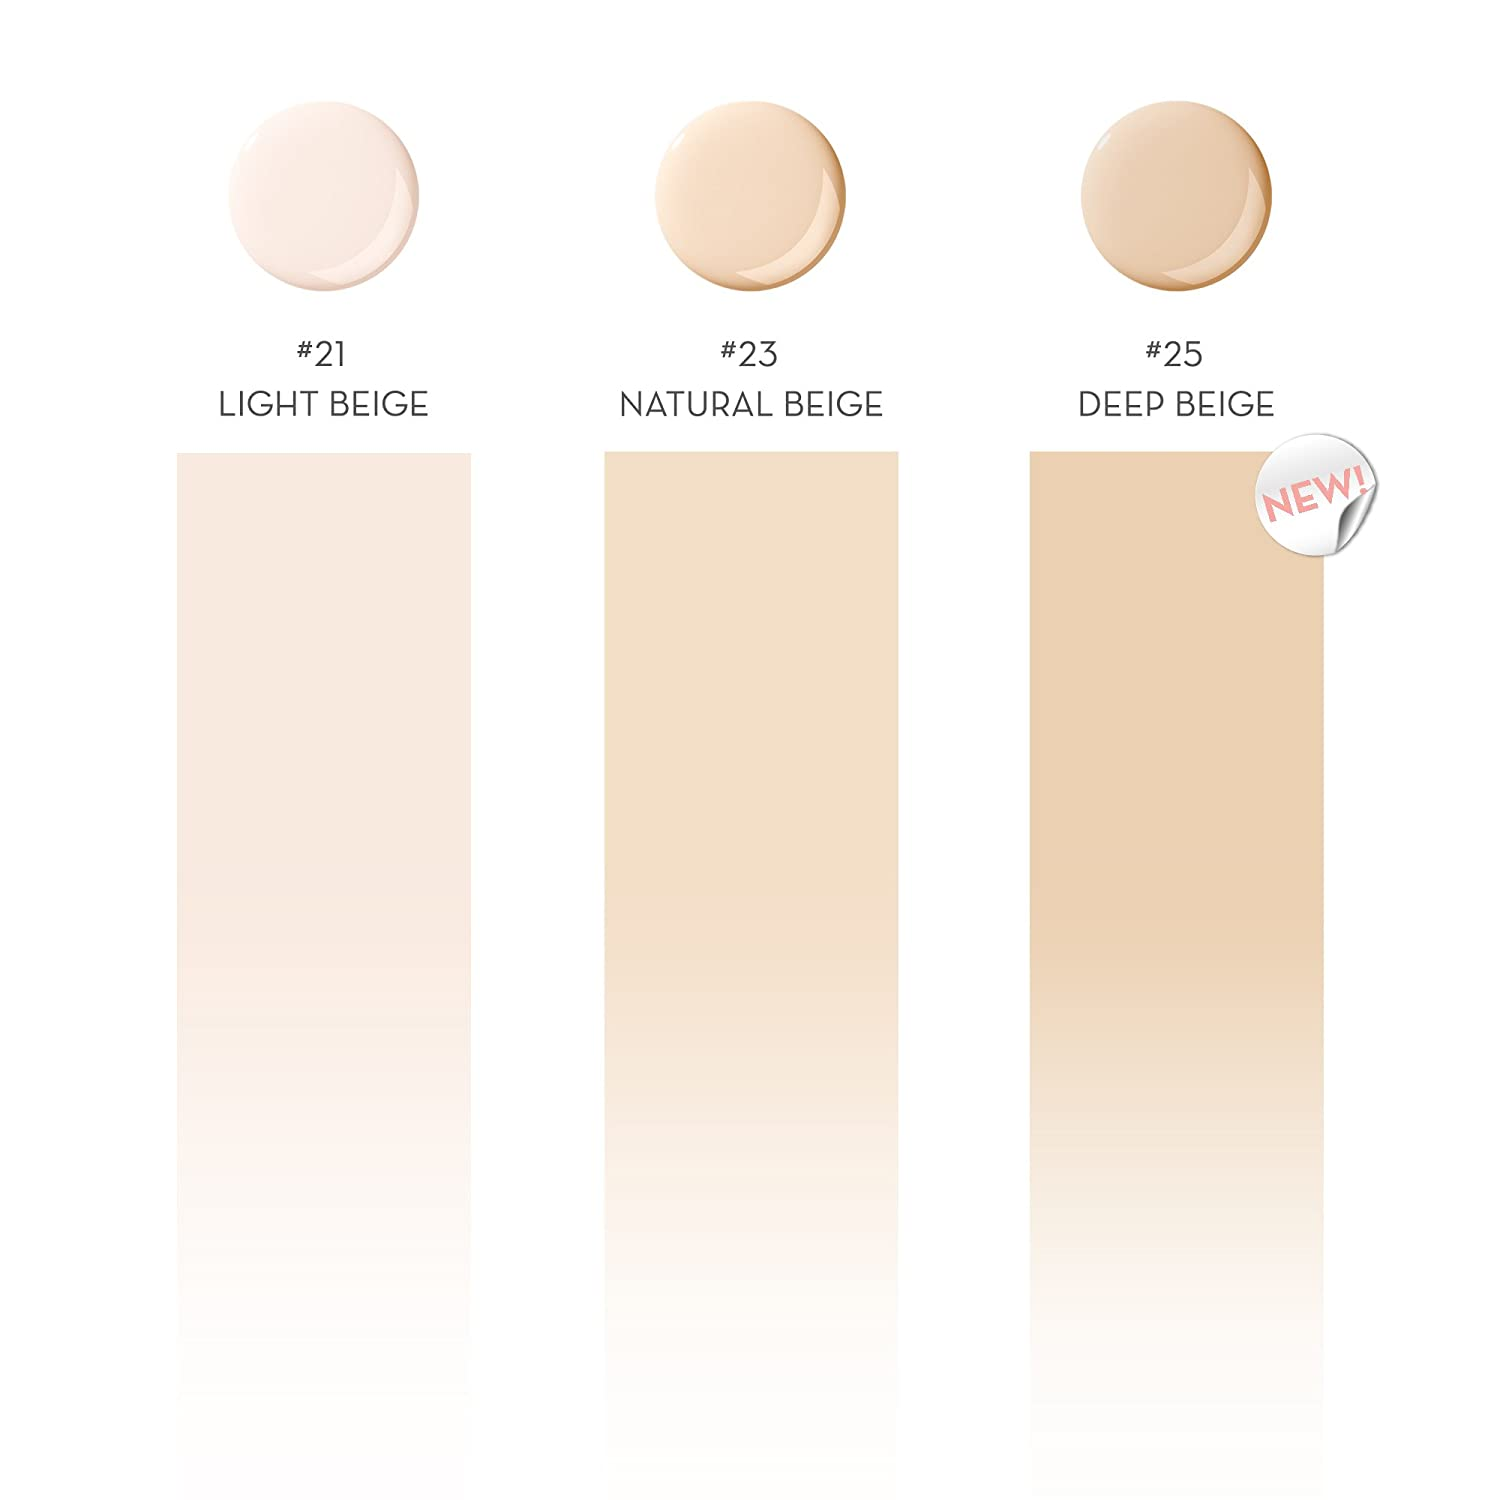 Amazon Age 20 s pact Foundation Premium Makeup 1 Extra Refill White Latte Essence Cover Pact SPF50 Made in Korea Color No